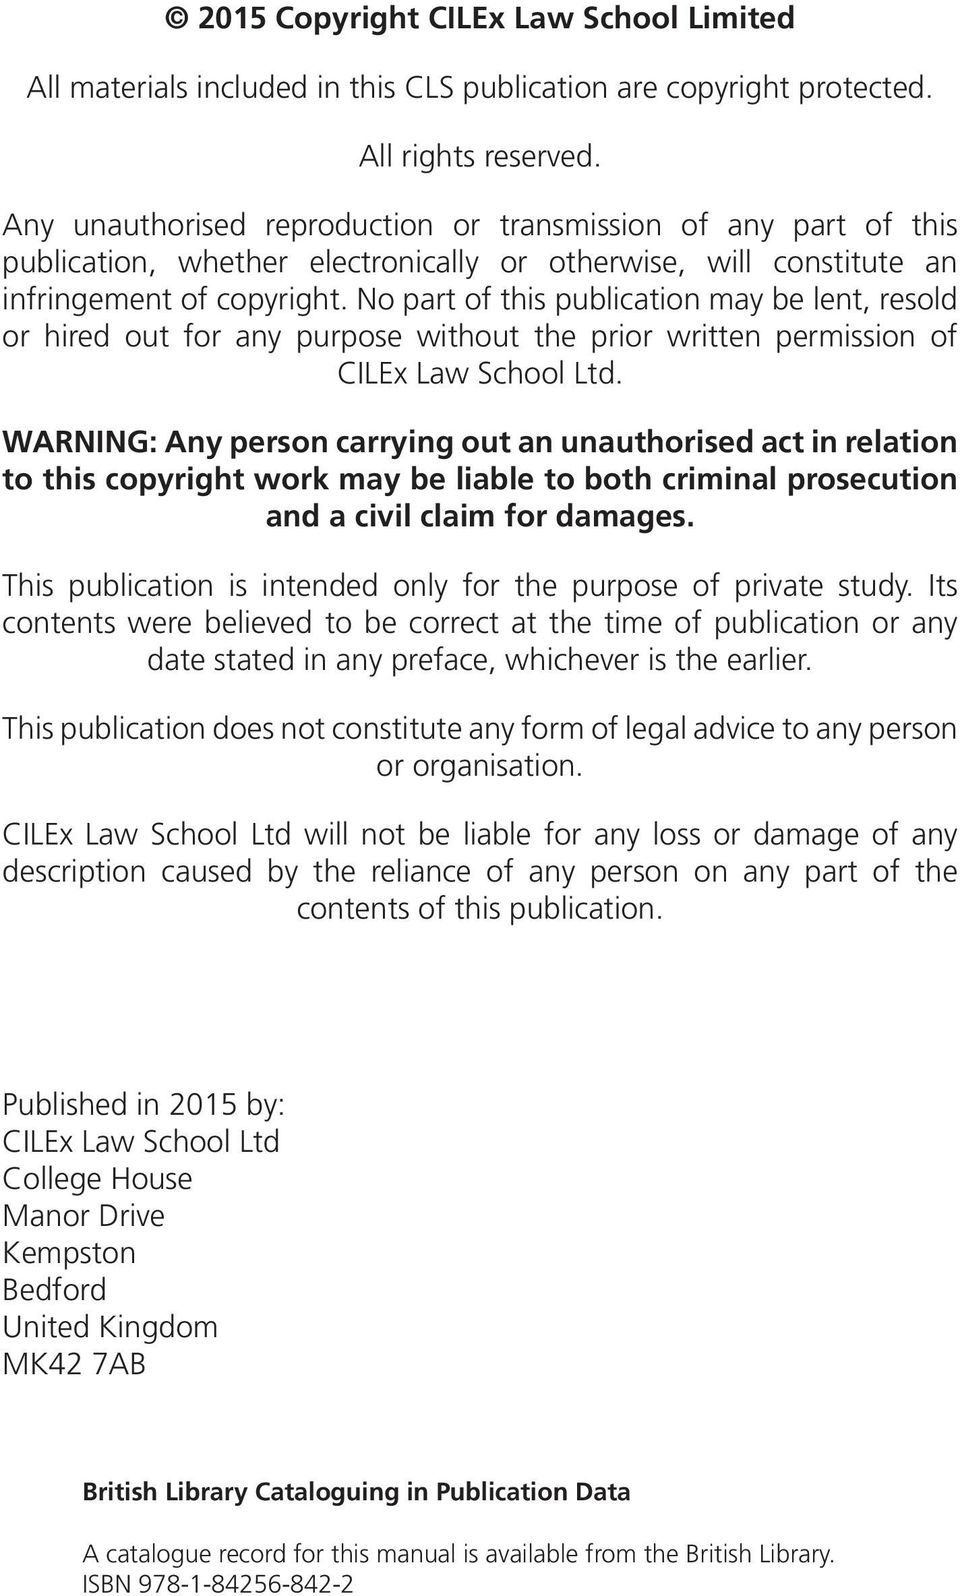 No part of this publication may be lent, resold or hired out for any purpose without the prior written permission of CILEx Law School Ltd.